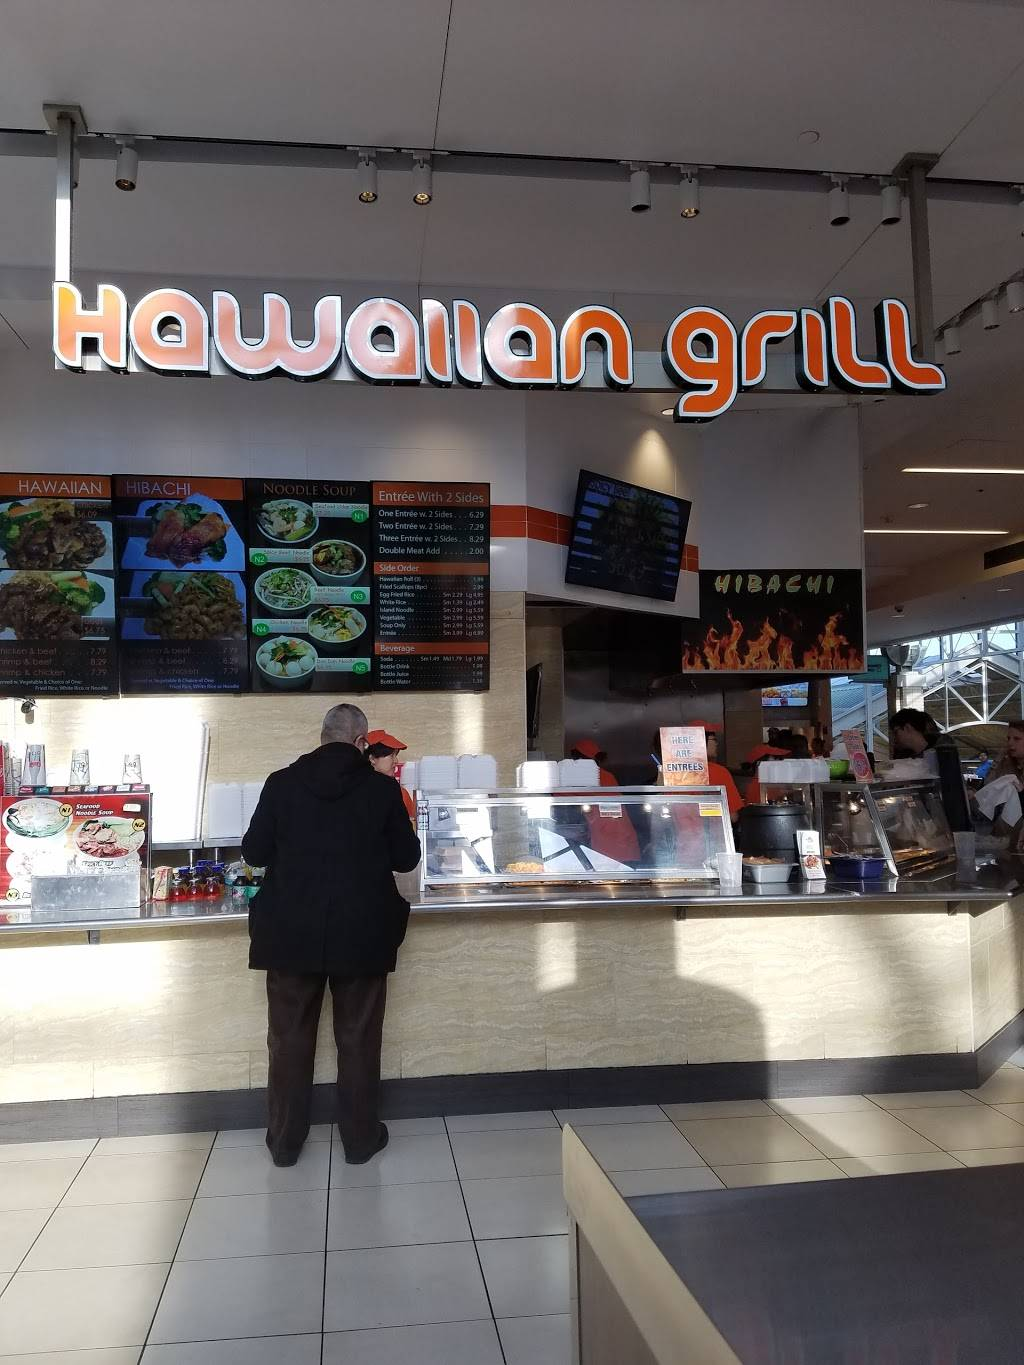 Hawaiian Grille | restaurant | 30 Mall Dr W, Jersey City, NJ 07302, USA | 2016569909 OR +1 201-656-9909